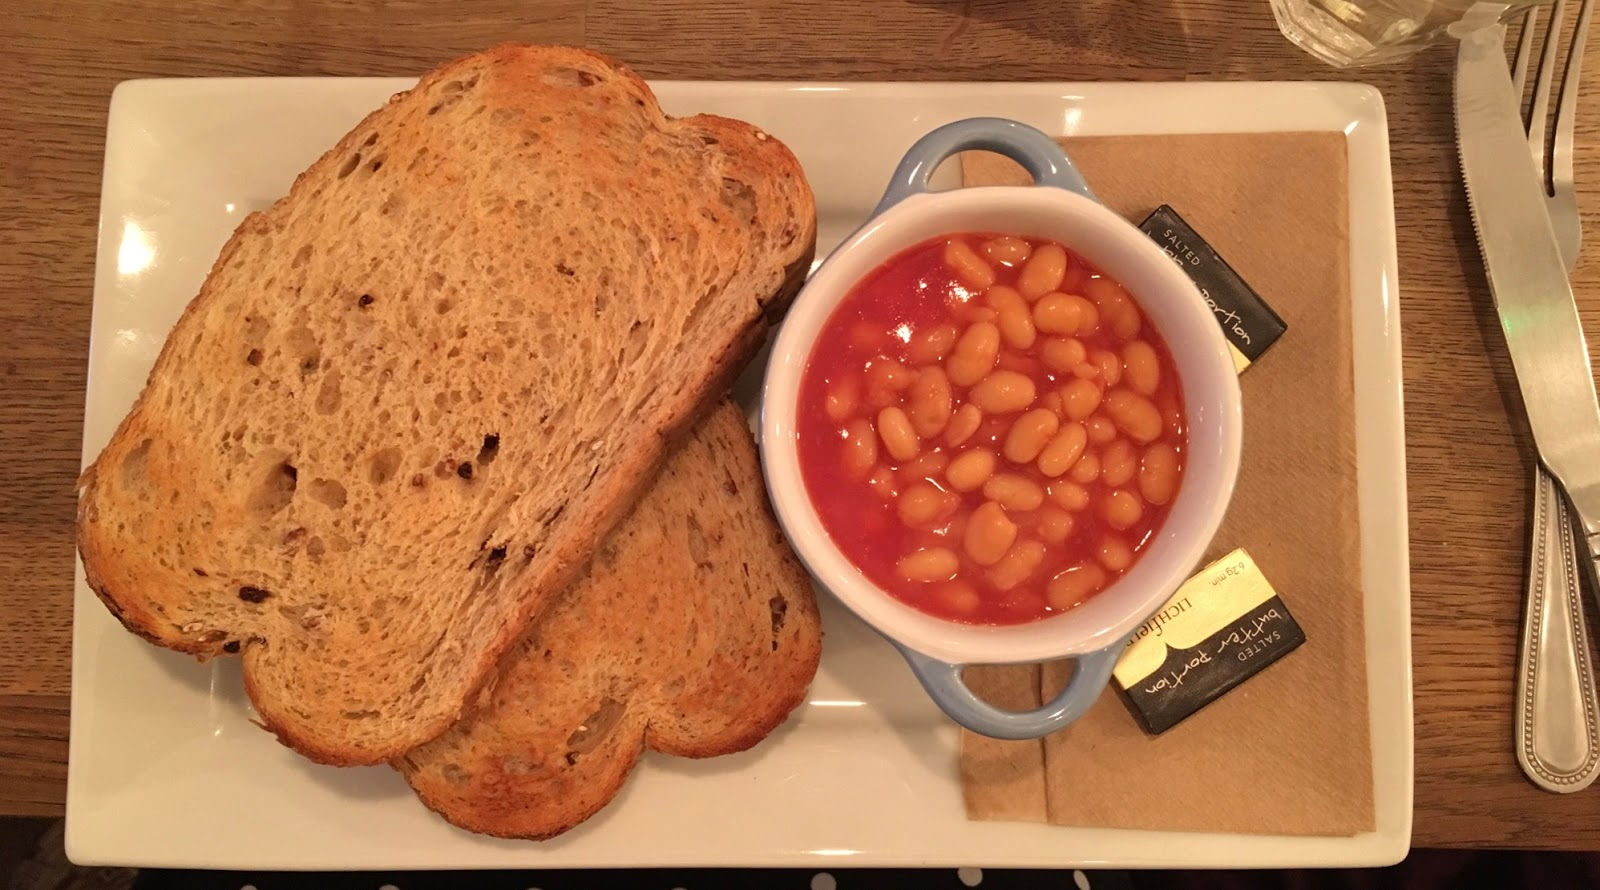 Baked Beans and Toast